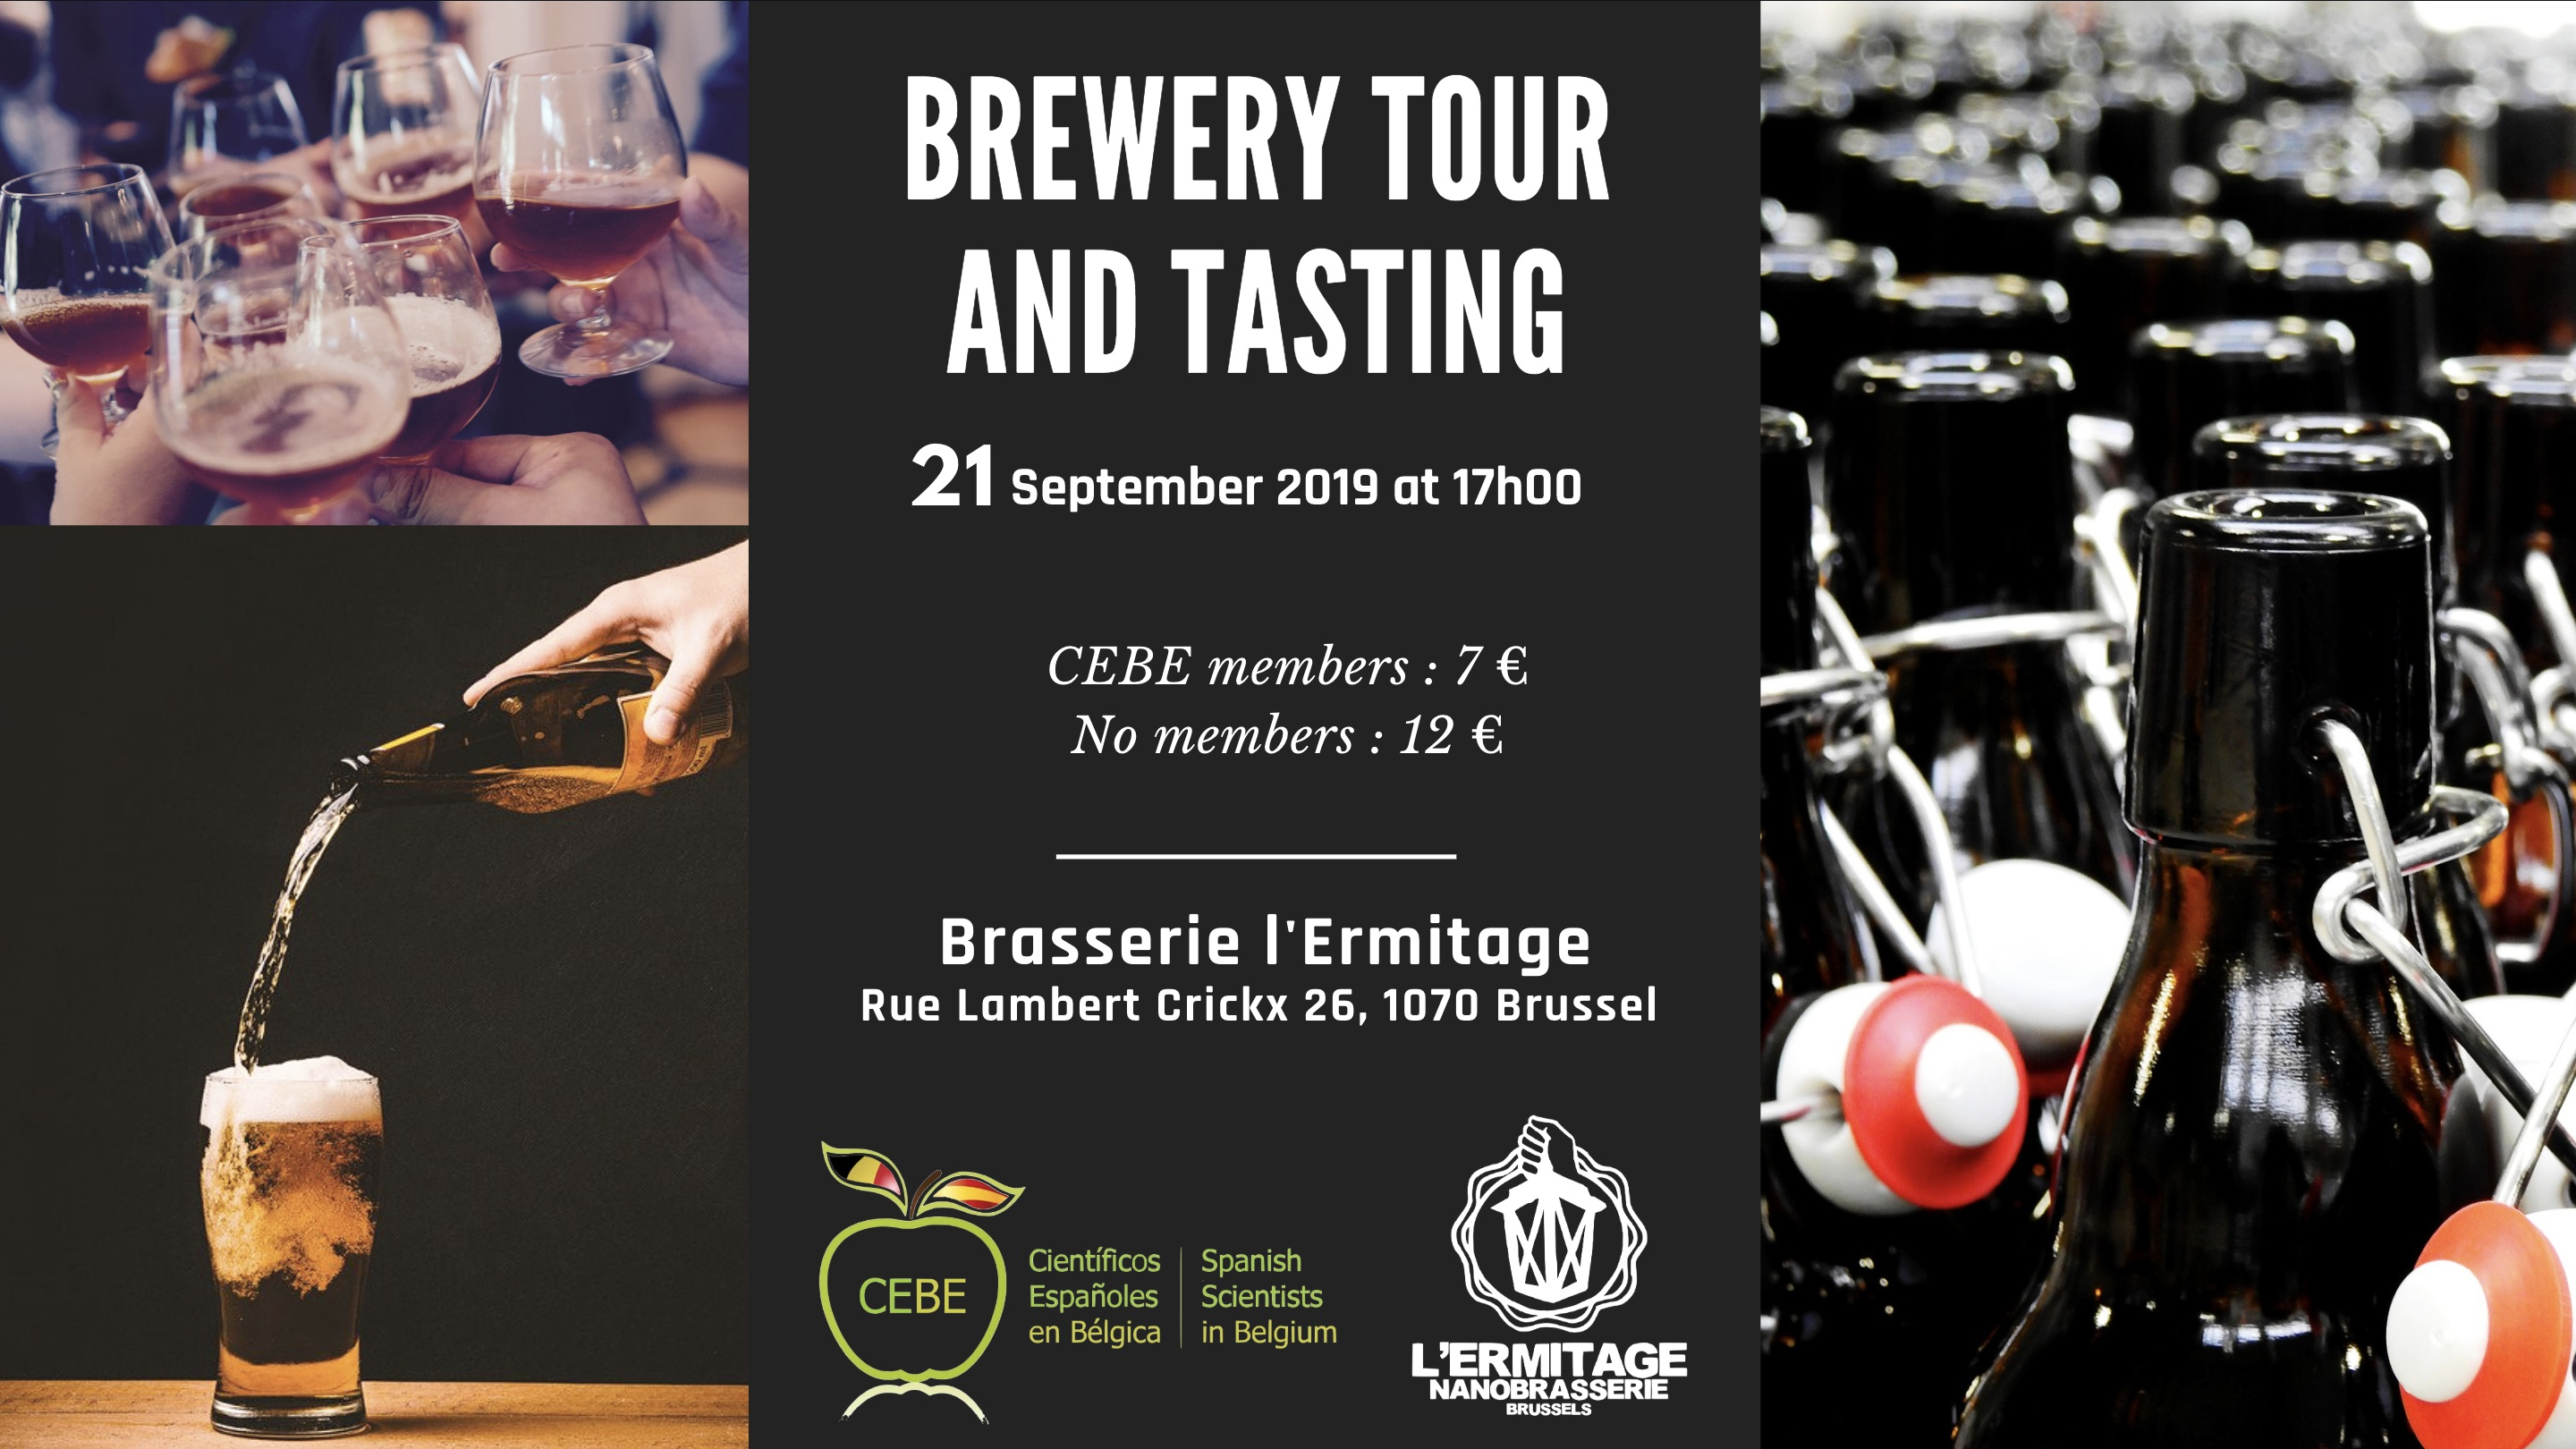 Brewery tour and beer tasting - NanoBrewery L'Hermitage